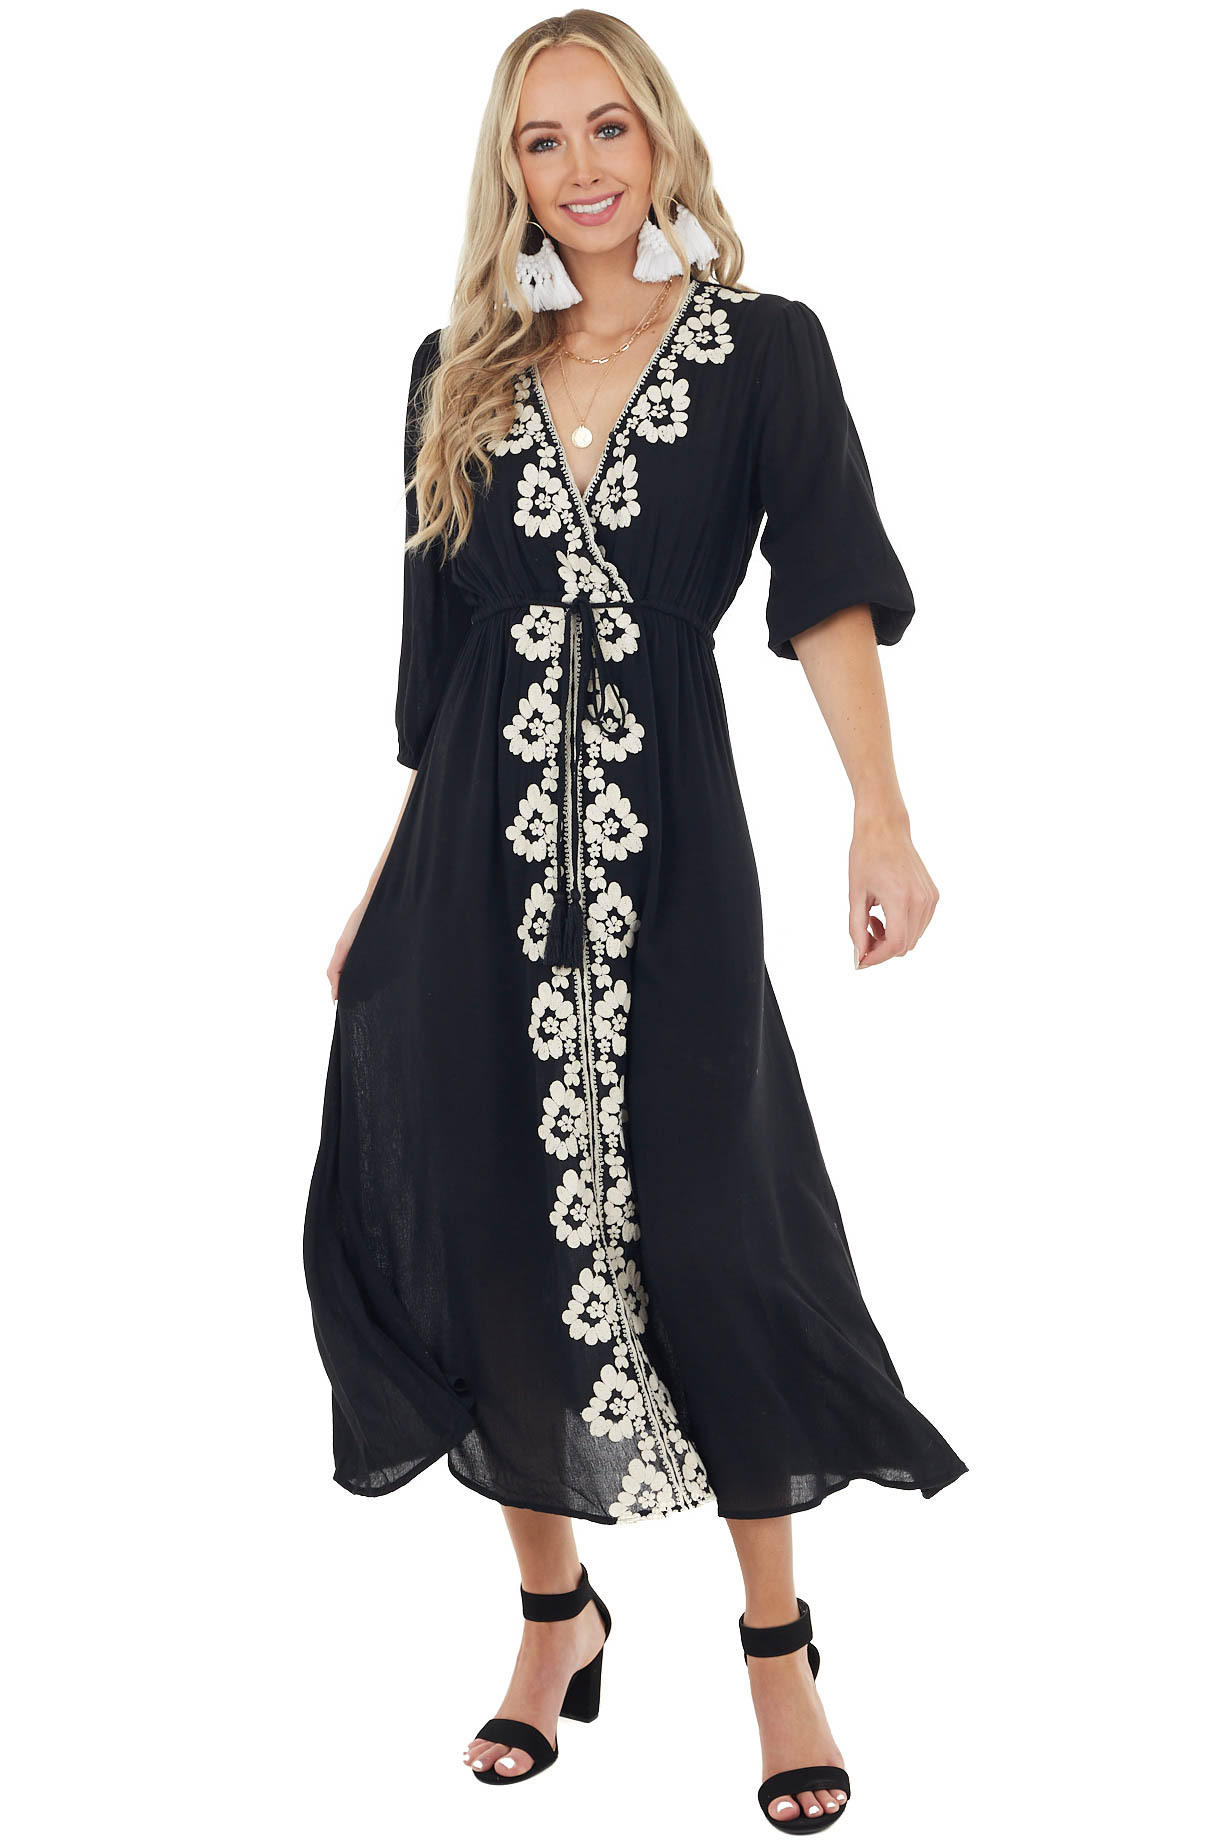 Black Maxi Dress with Embroidered Details and 3/4 Sleeves